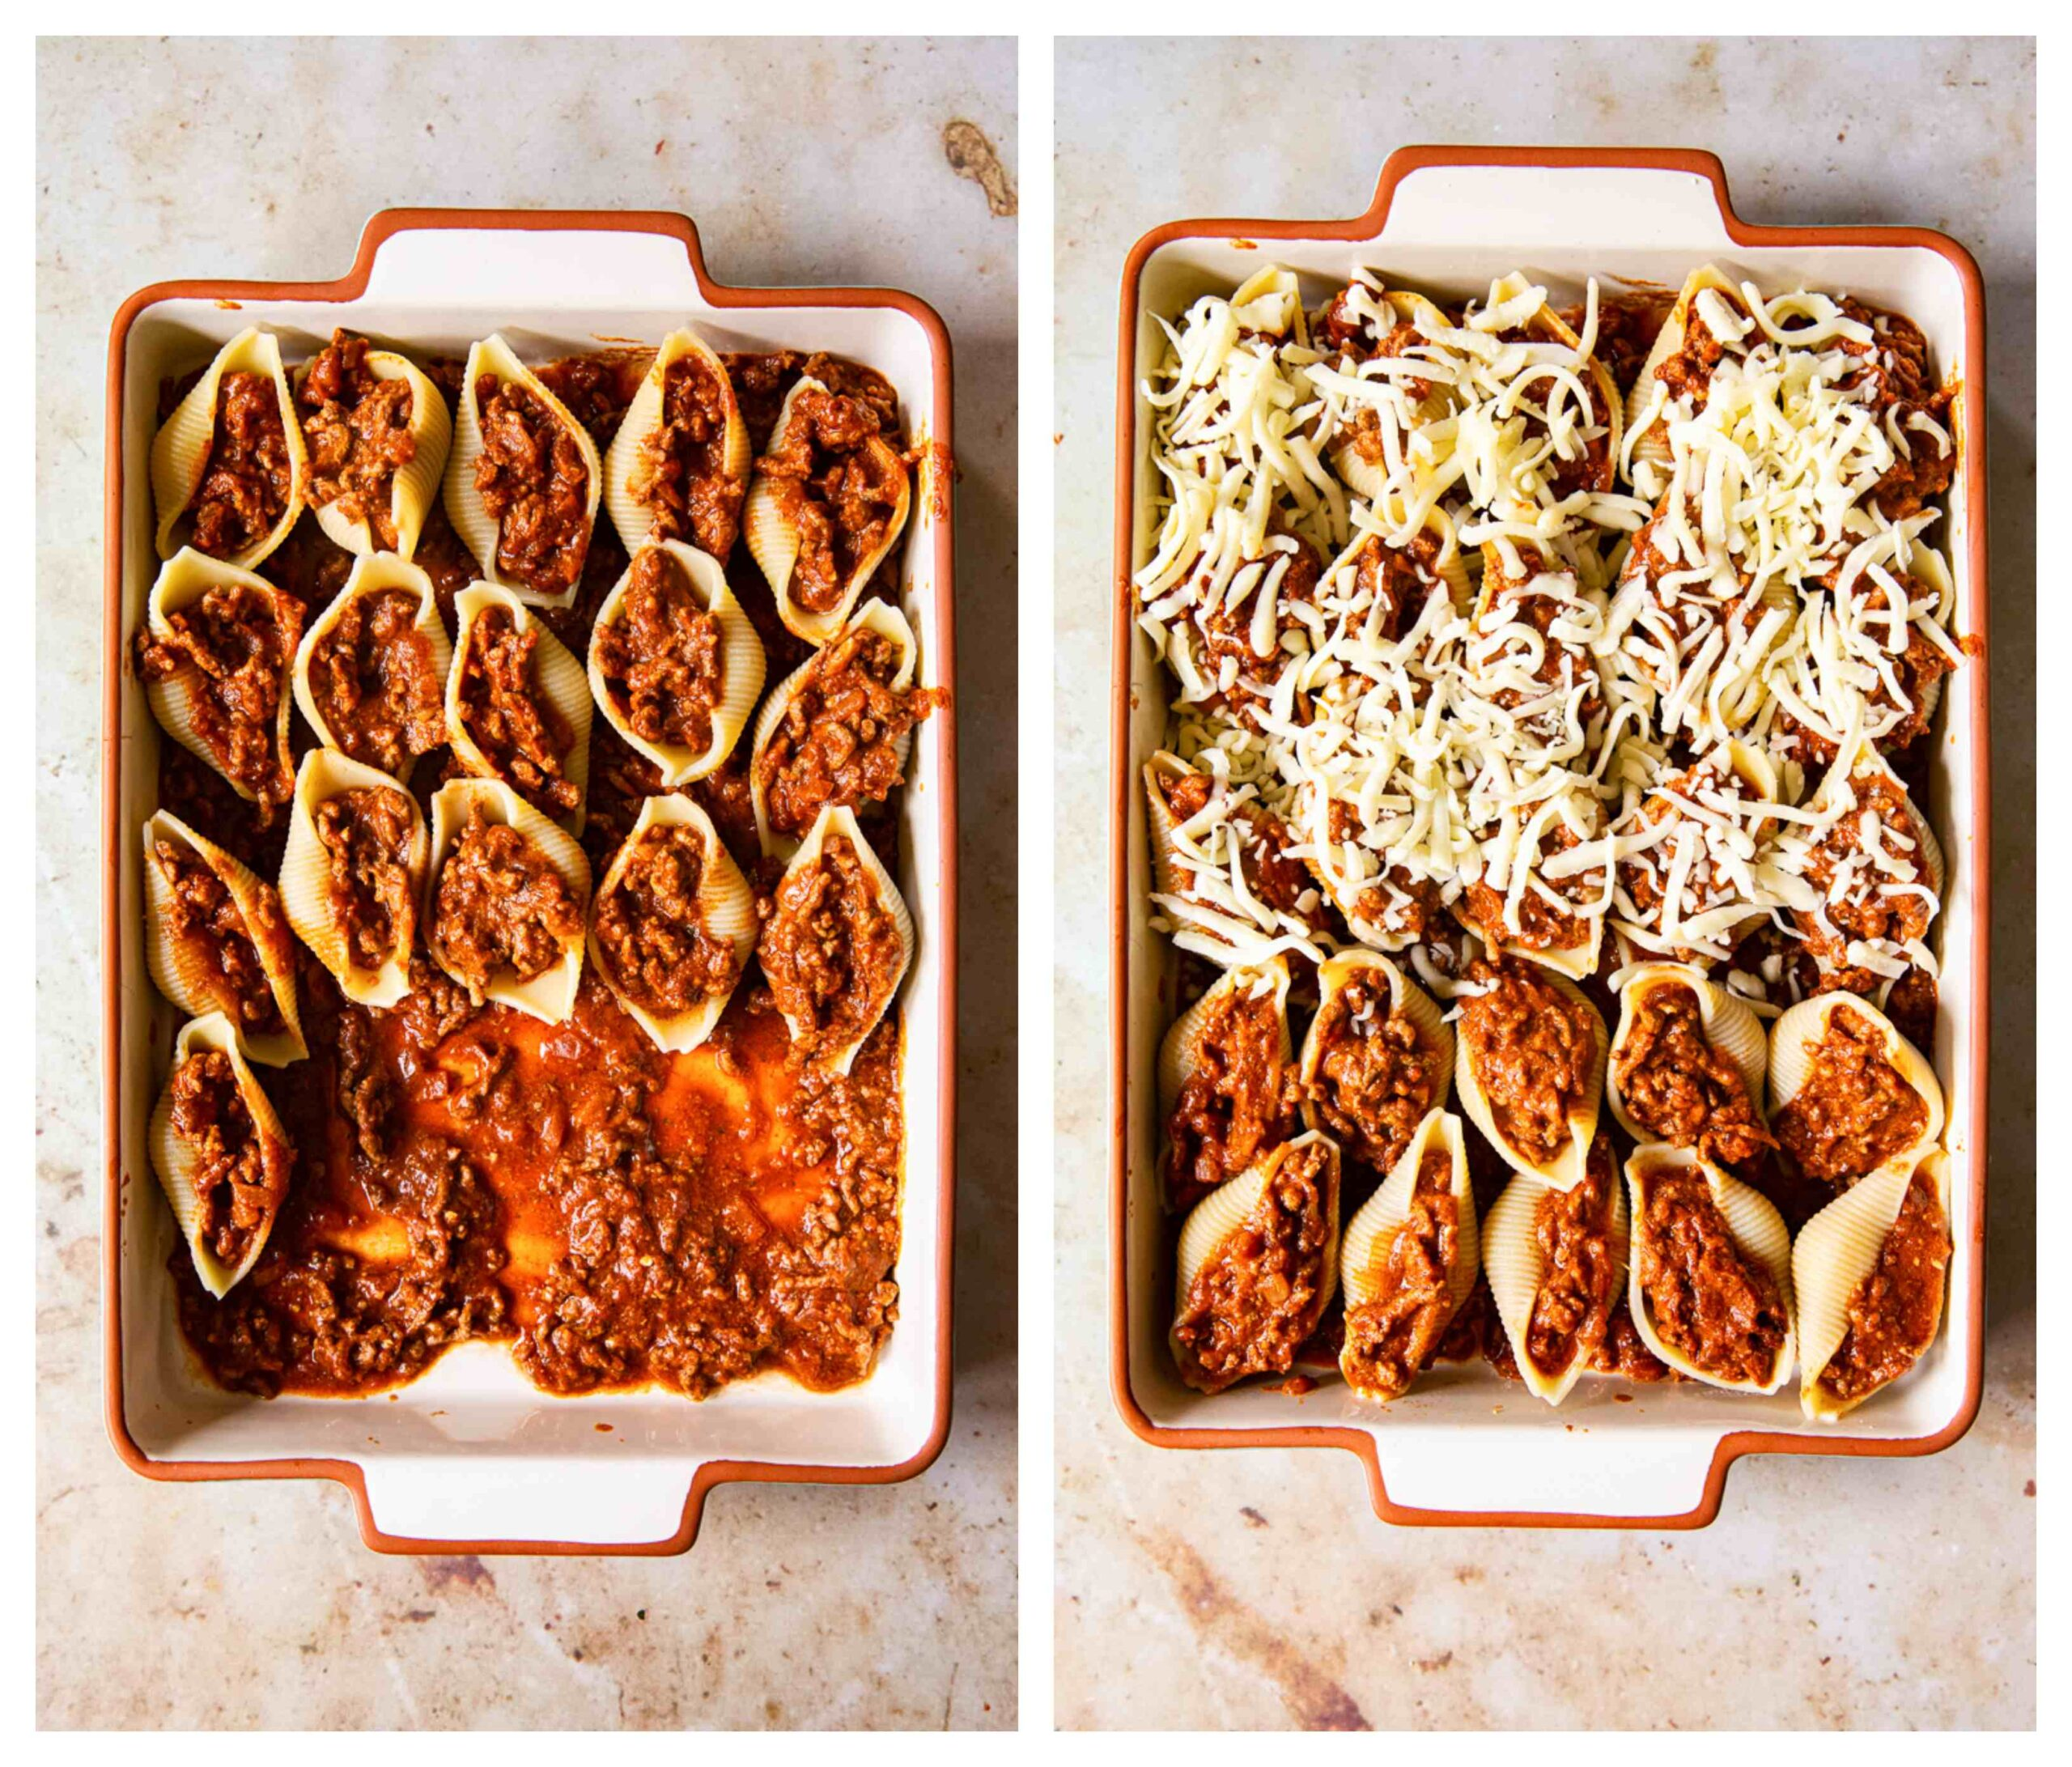 beef stuffed pasta shells process images